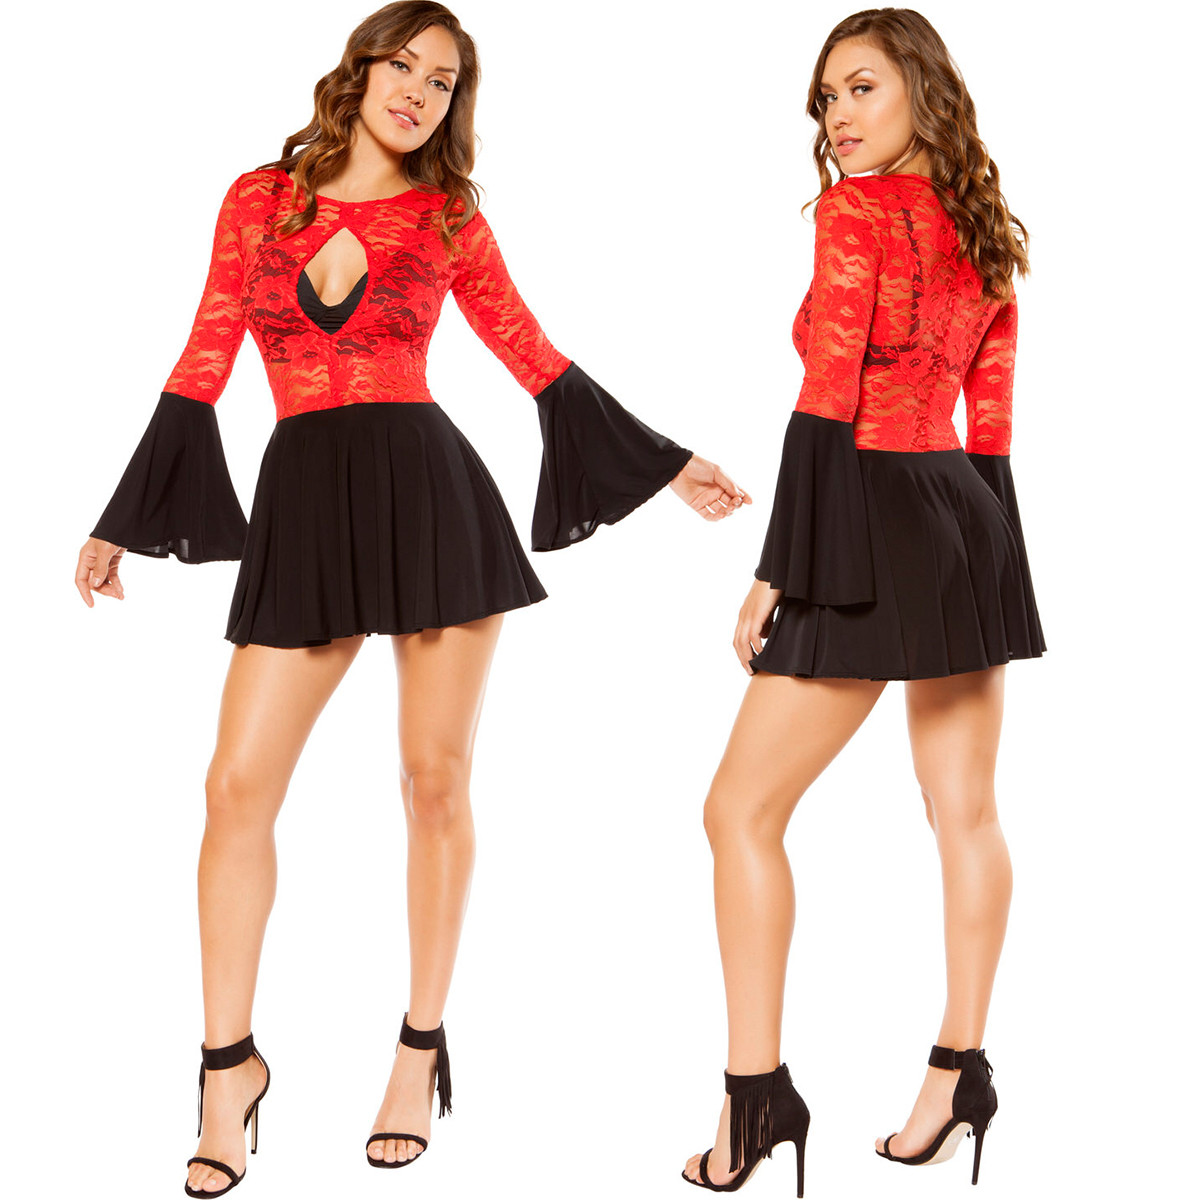 Mini Dress - RED/BLACK - Front and Back - © 2016 Roma Costumes, Inc.